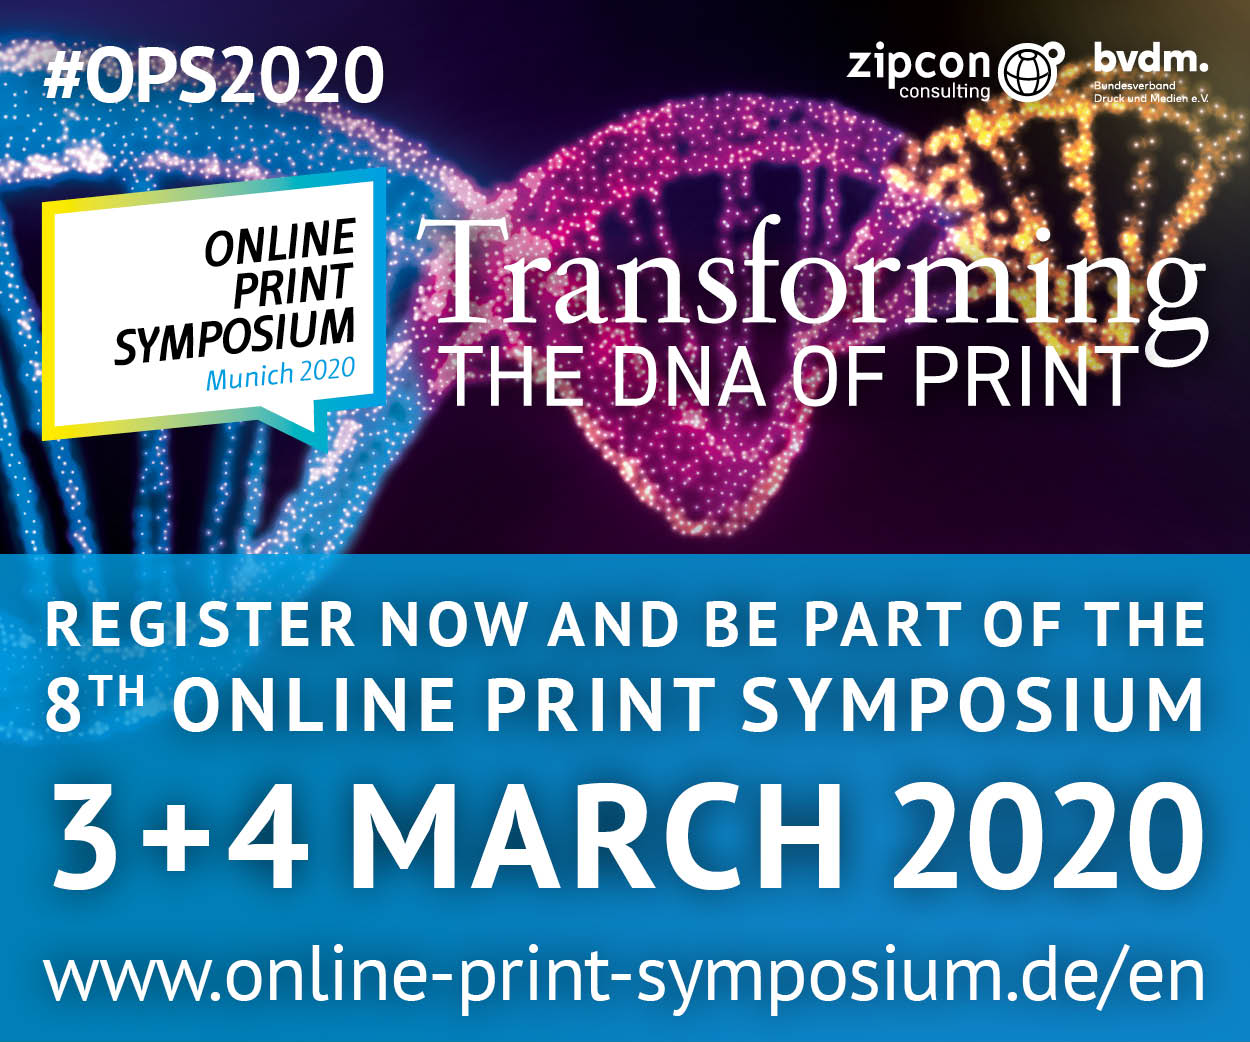 Online Print Symposium 2020 - Transforming the DNA of Print